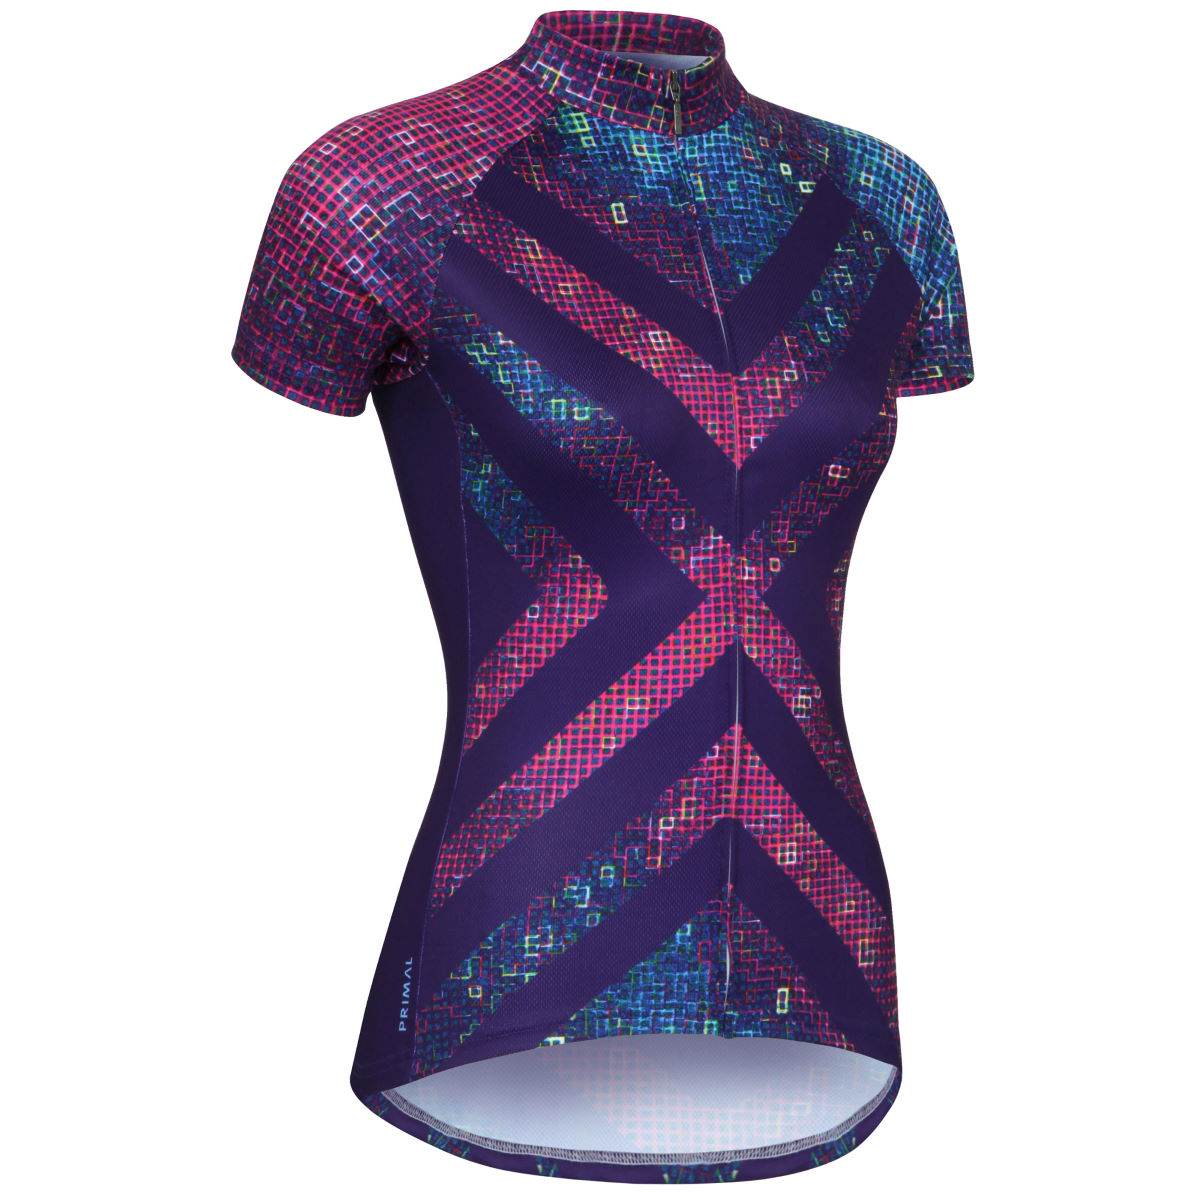 Maillot Femme Primal Pixel8 (coupe sportive) - XS Multi Coloured